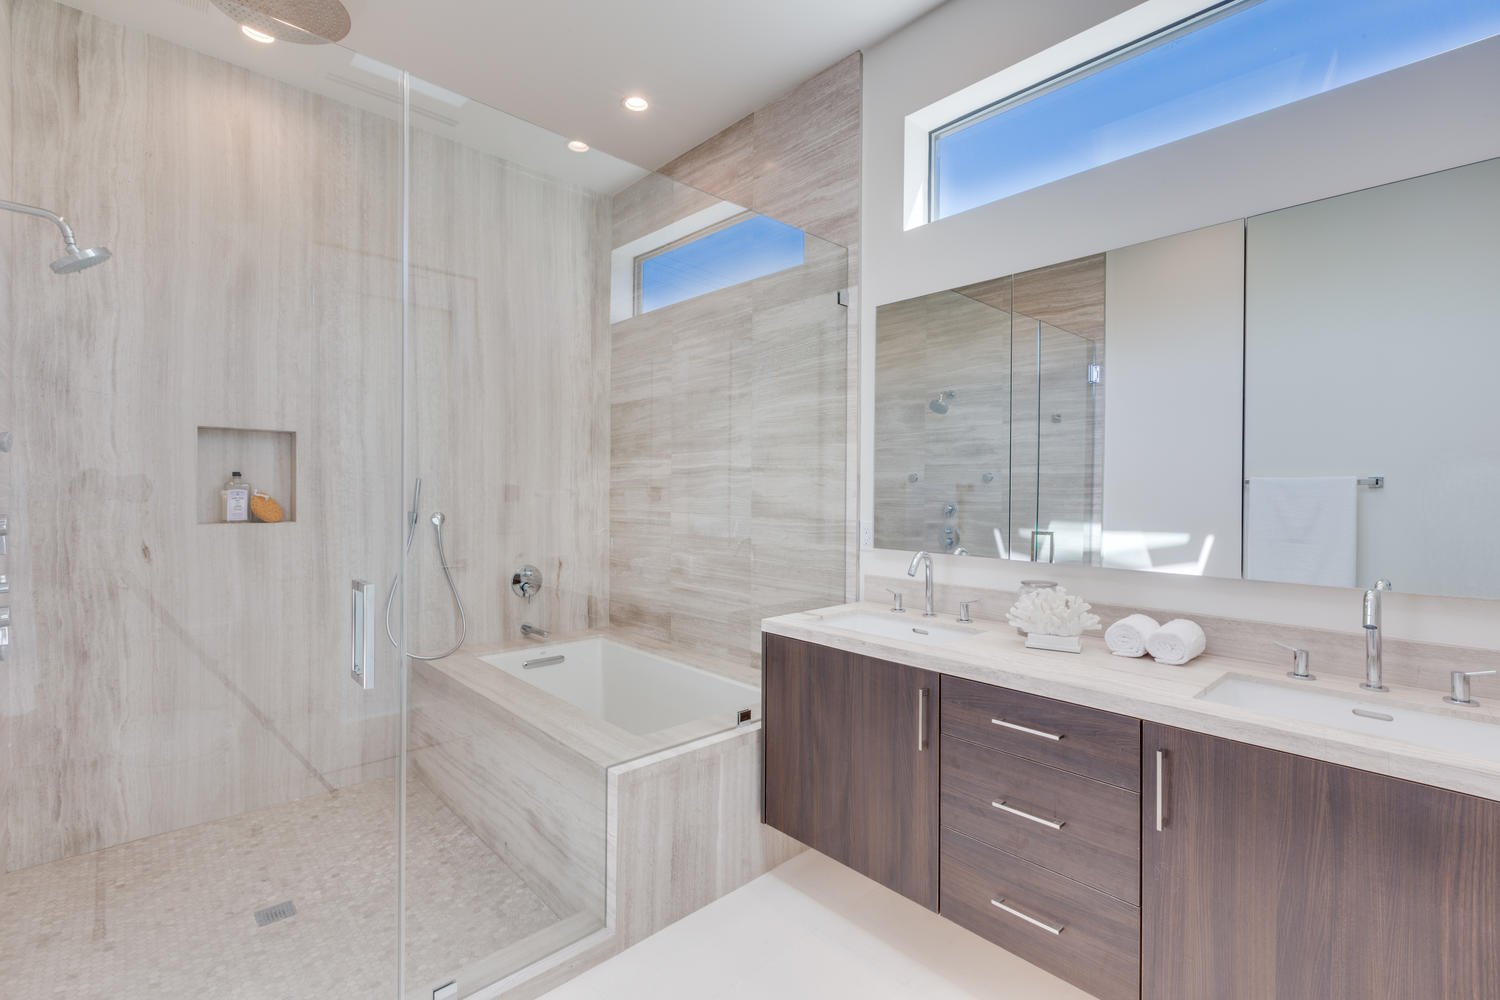 Bath Room, Drop In Sink, Limestone Floor, Marble Counter, Drop In Tub, Soaking Tub, Full Shower, Enclosed Shower, Ceiling Lighting, Recessed Lighting, Stone Tile Wall, and One Piece Toilet Master Bathroom  The Rosewood Residence